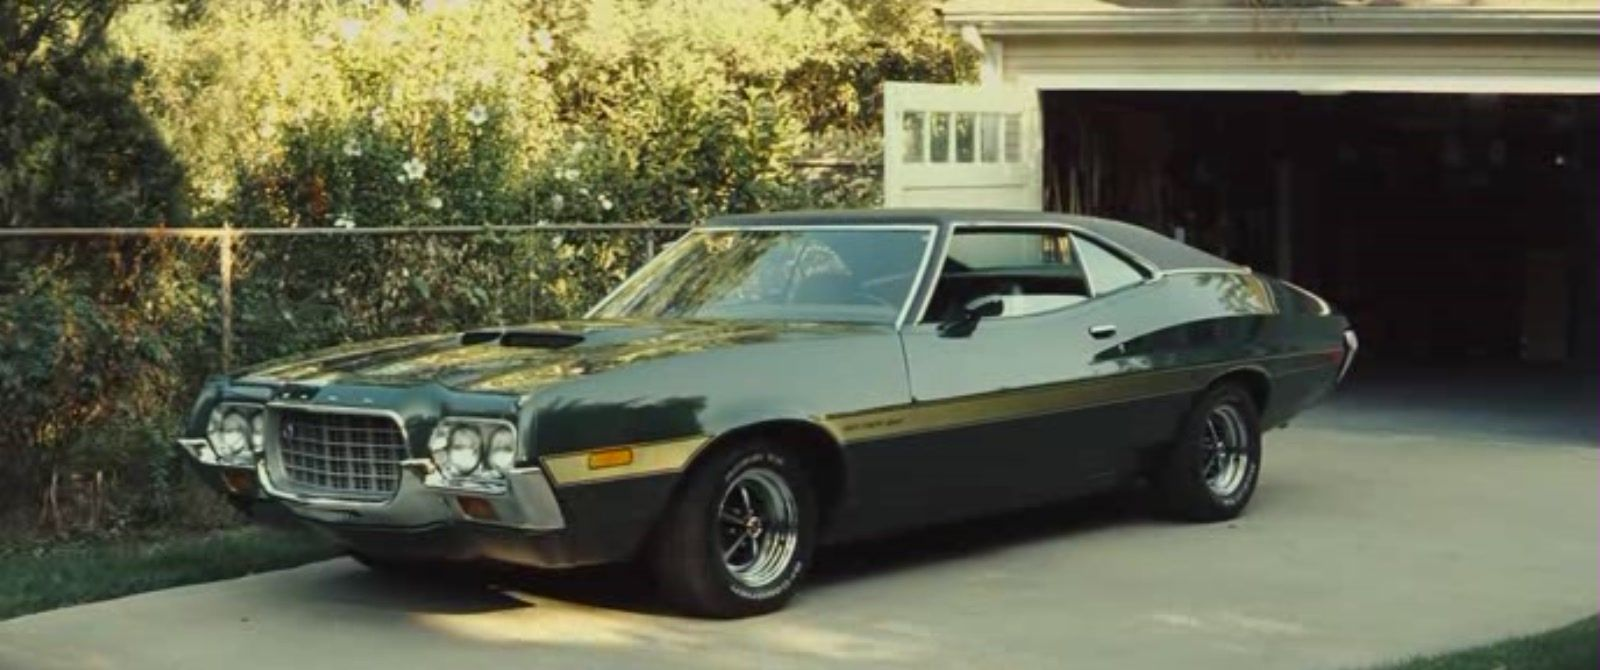 Ford Gran Torino From Grant Torino Cars Movie Famous Movie